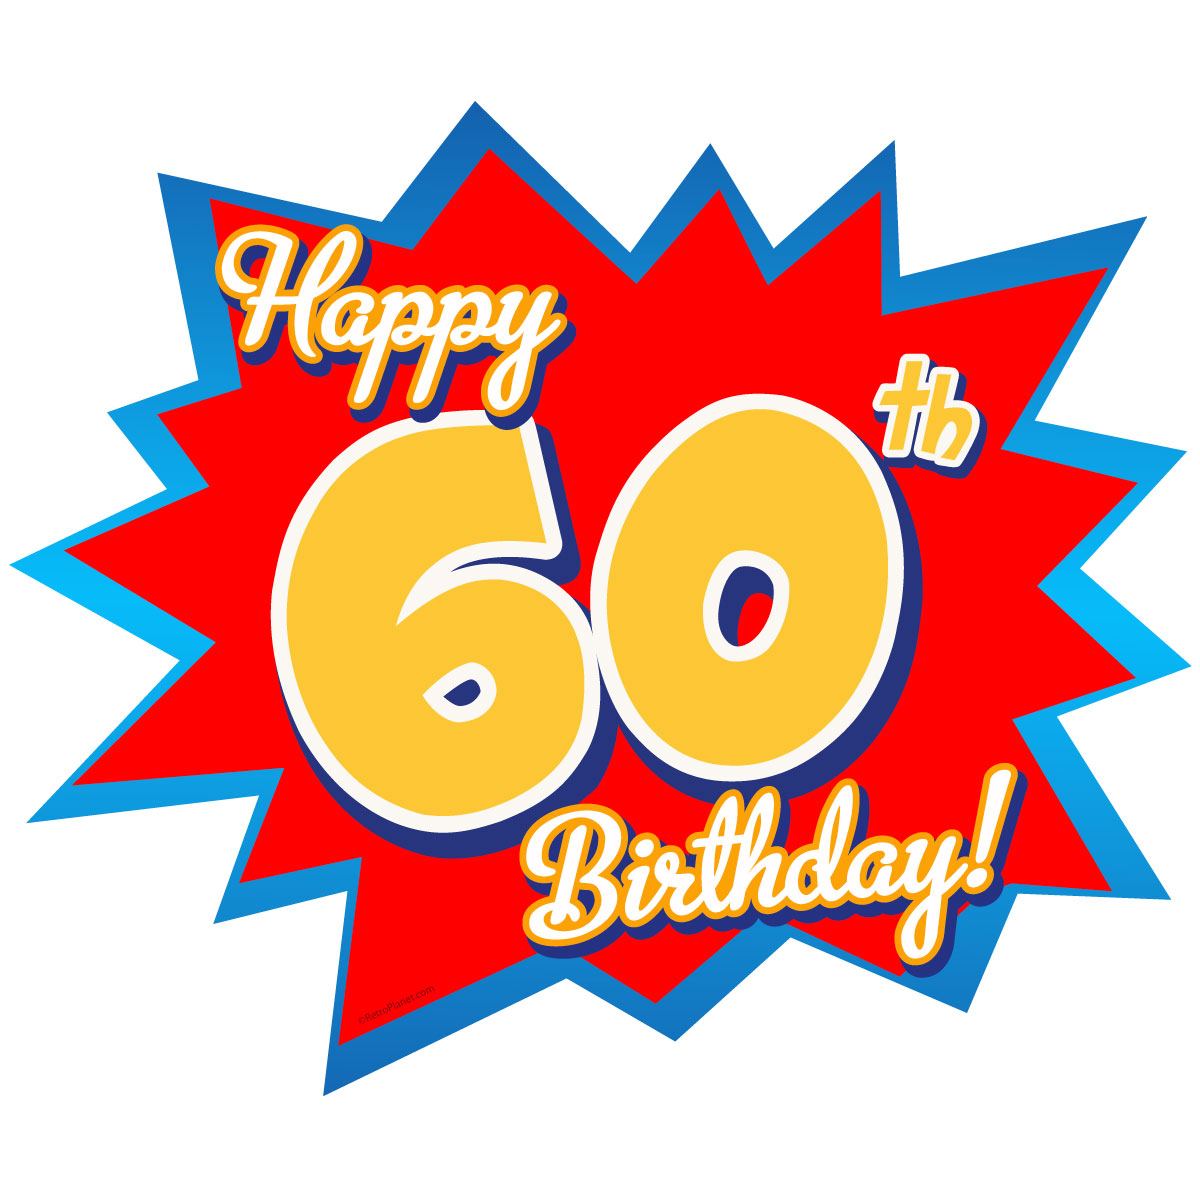 Happy 60th Birthday Party Wall Decal.